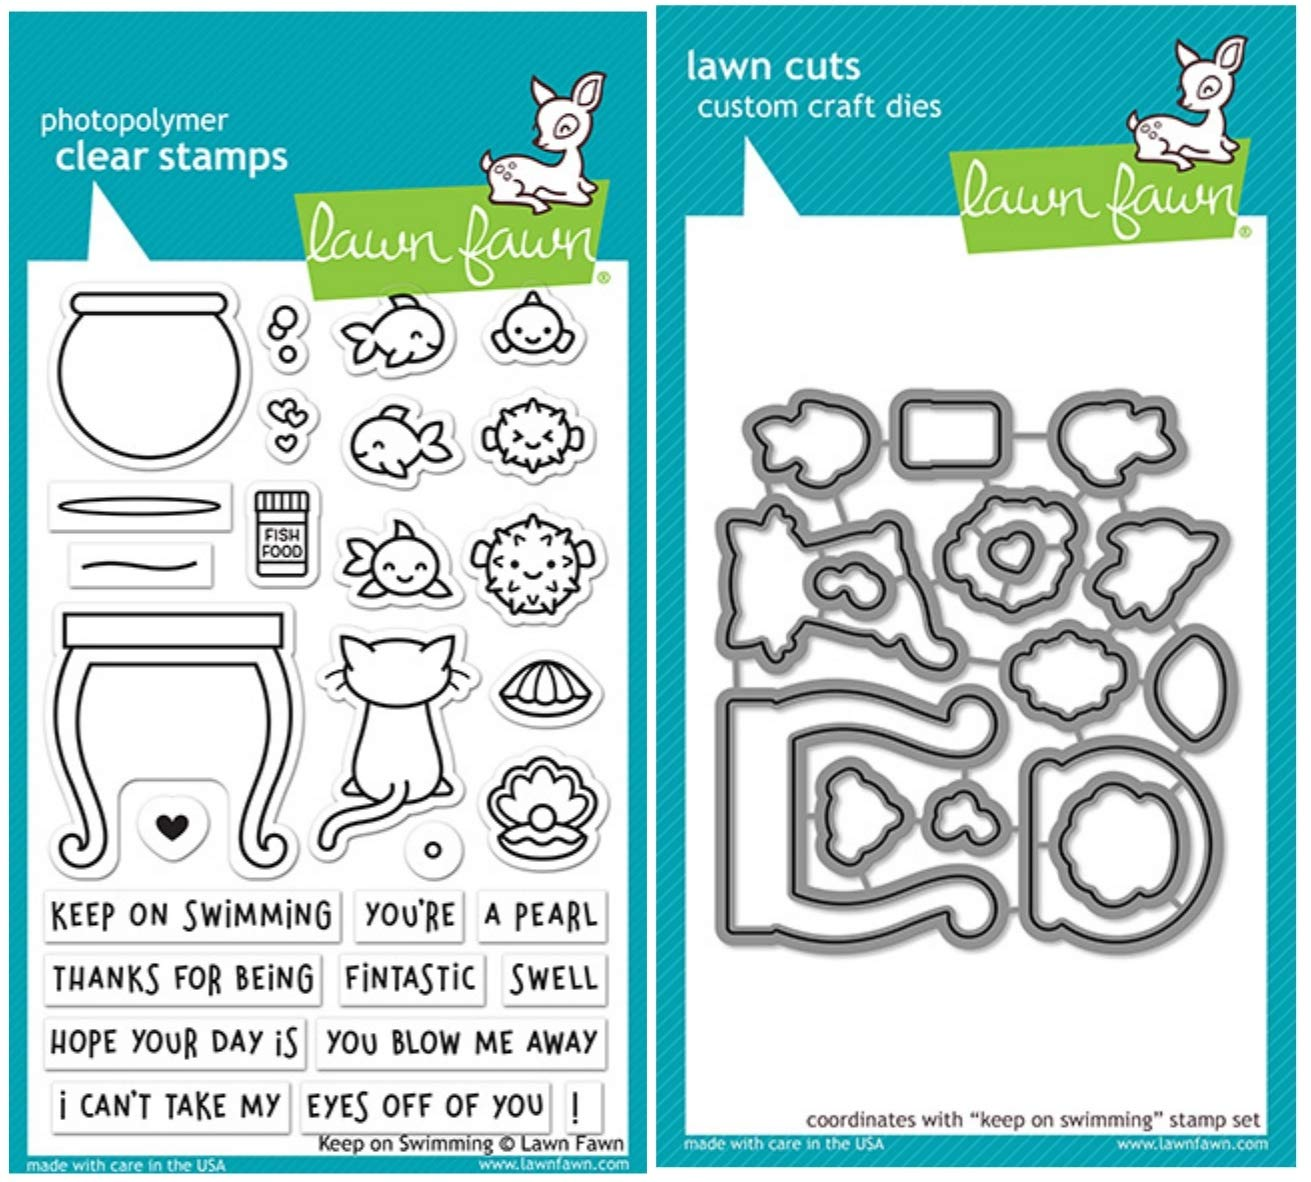 Lawn Fawn Keep on Swimming 4''x6'' Clear Stamps and Coordinating Custom Craft Dies, Bundle of Two Items (LF 1955, LF1956) by Lawn Fawn